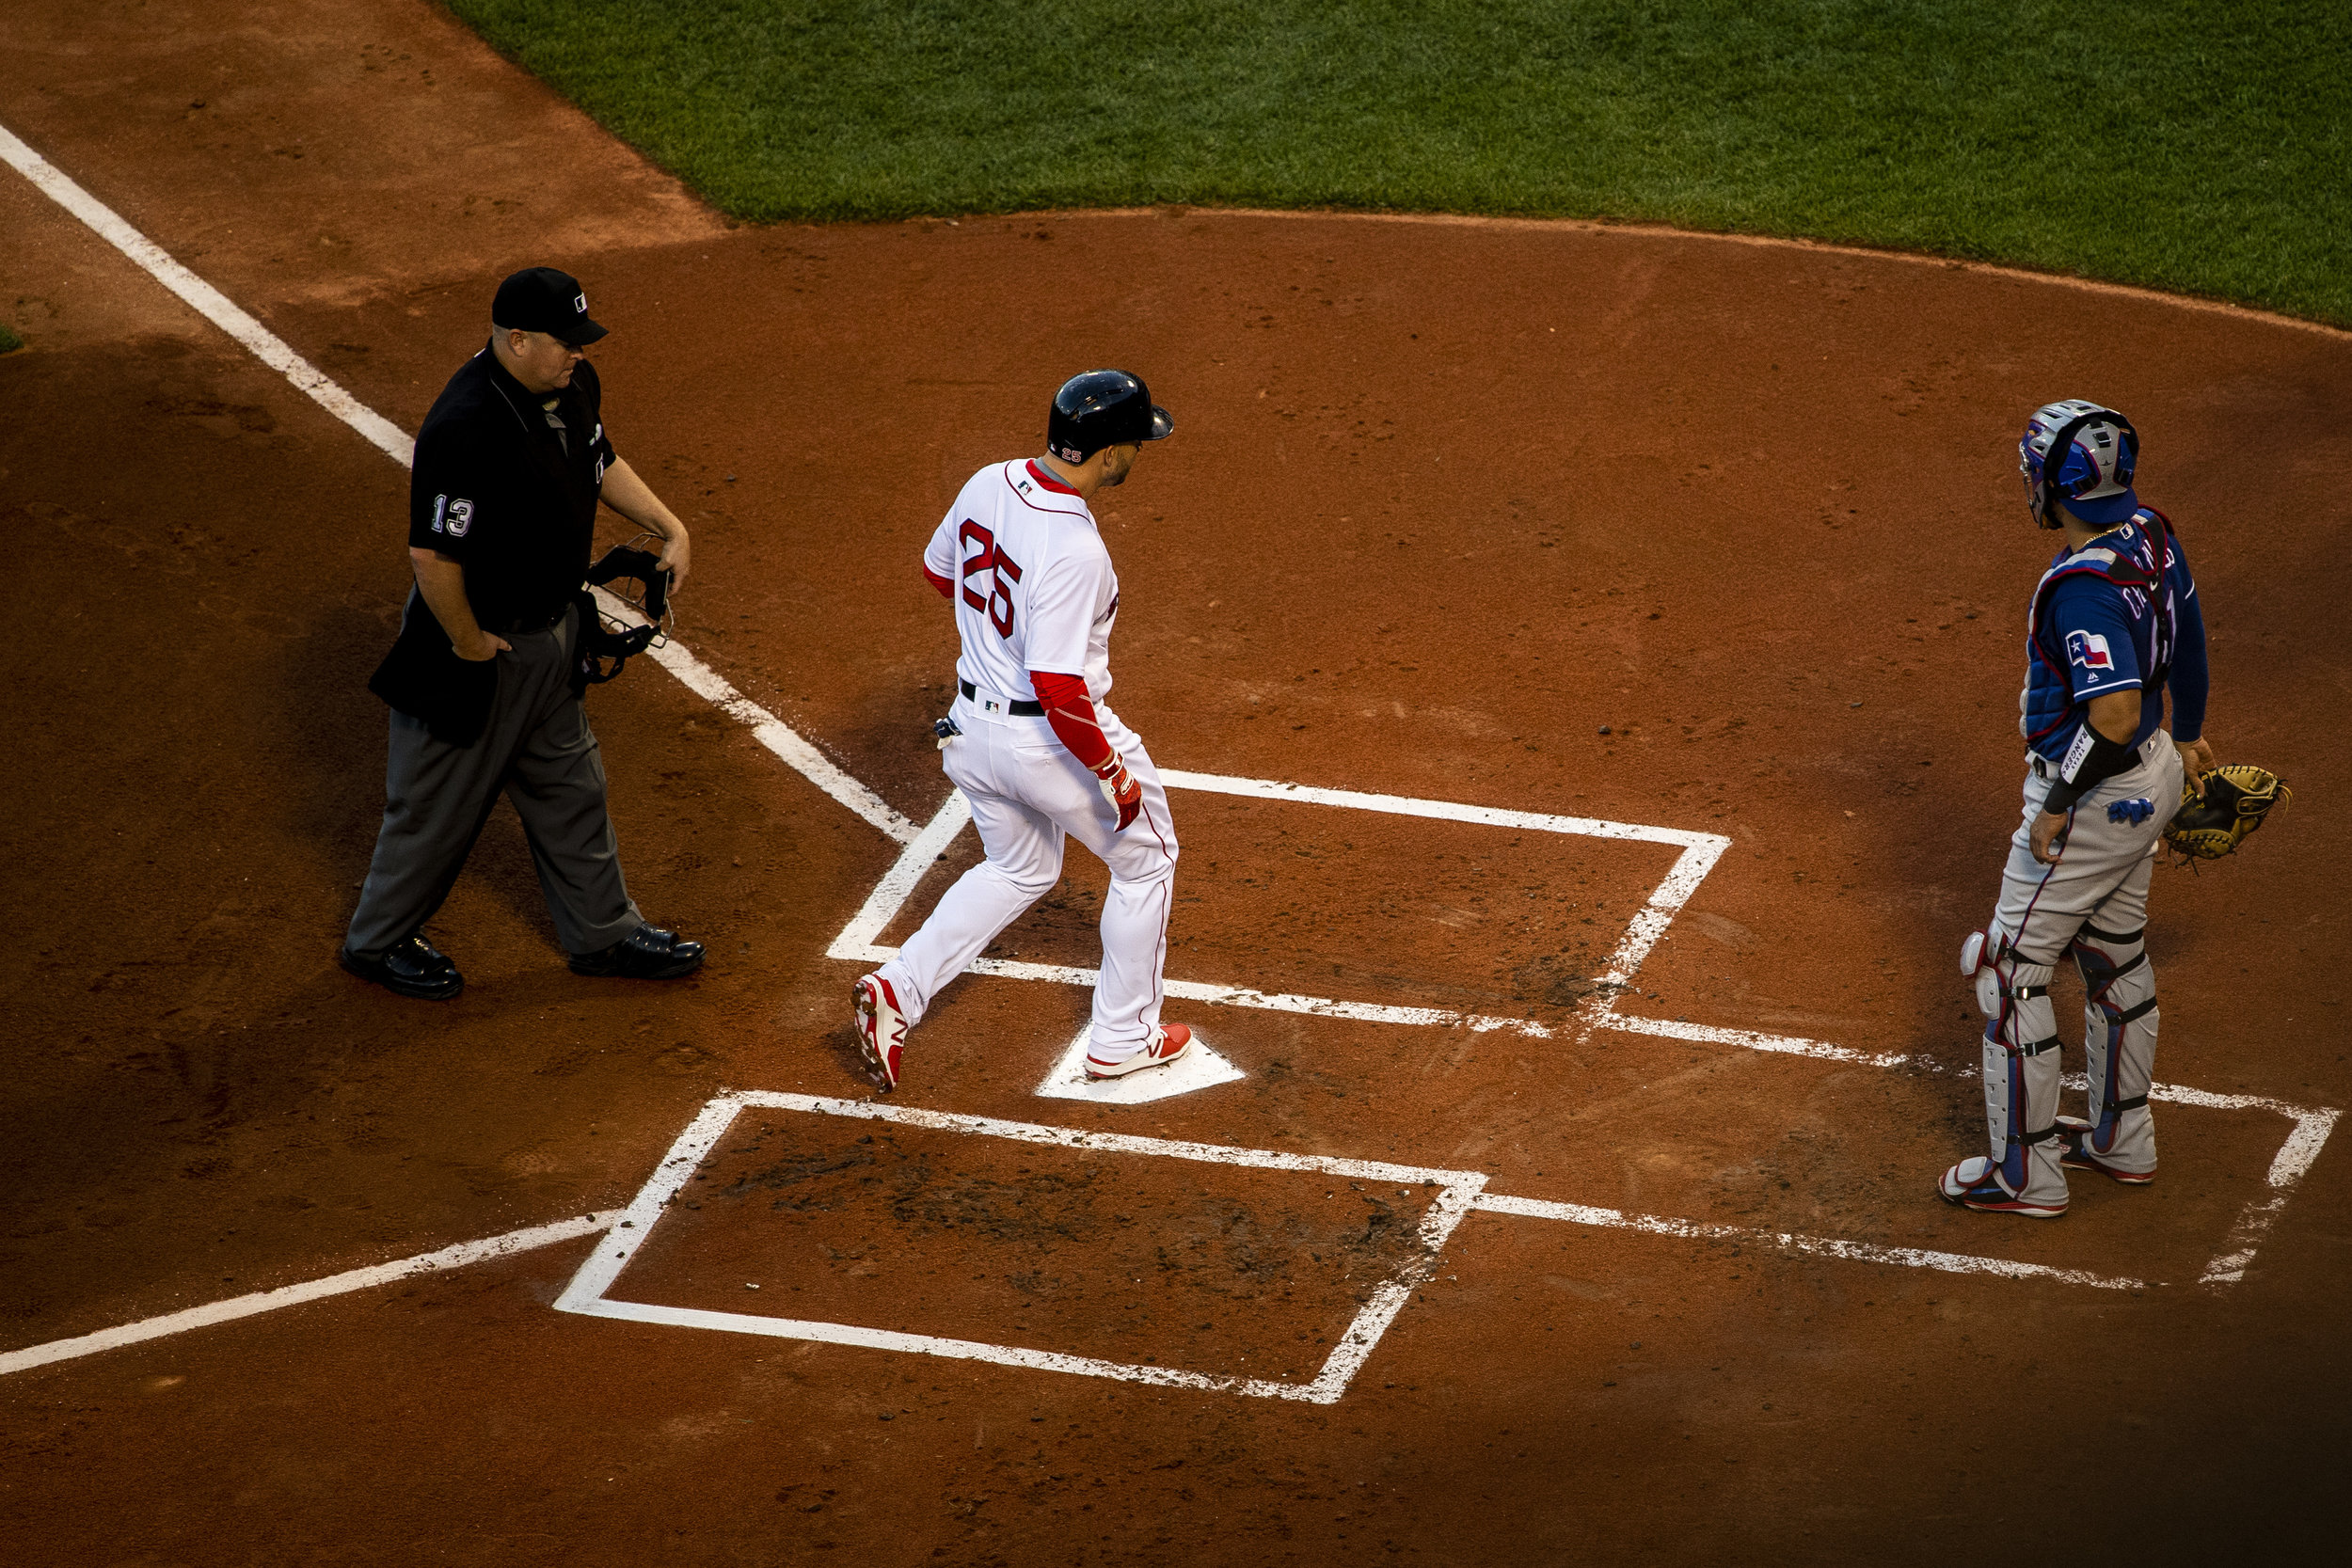 July 8, 2018, Boston, MA: Boston Red Sox infielder Steve Pearce crosses home plate after hitting a home run as the Boston Red Sox face the Texas Rangers Fenway Park in Boston, Massachusetts on Monday, July 9, 2018. (Photo by Matthew Thomas/Boston Red Sox)